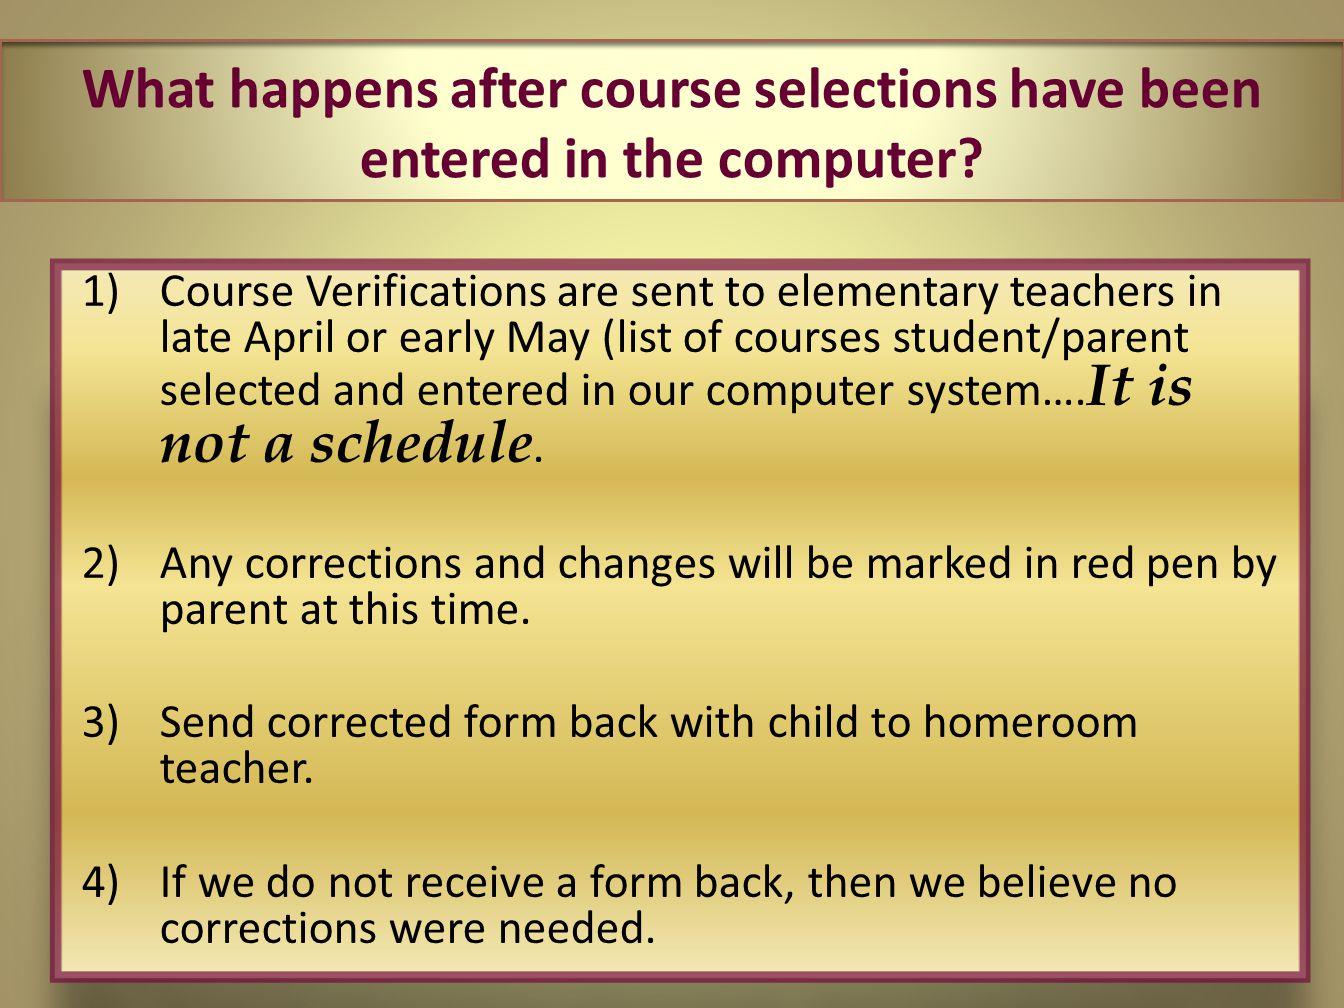 What happens after course selections have been entered in the computer? 1)Course Verifications are sent to elementary teachers in late April or early